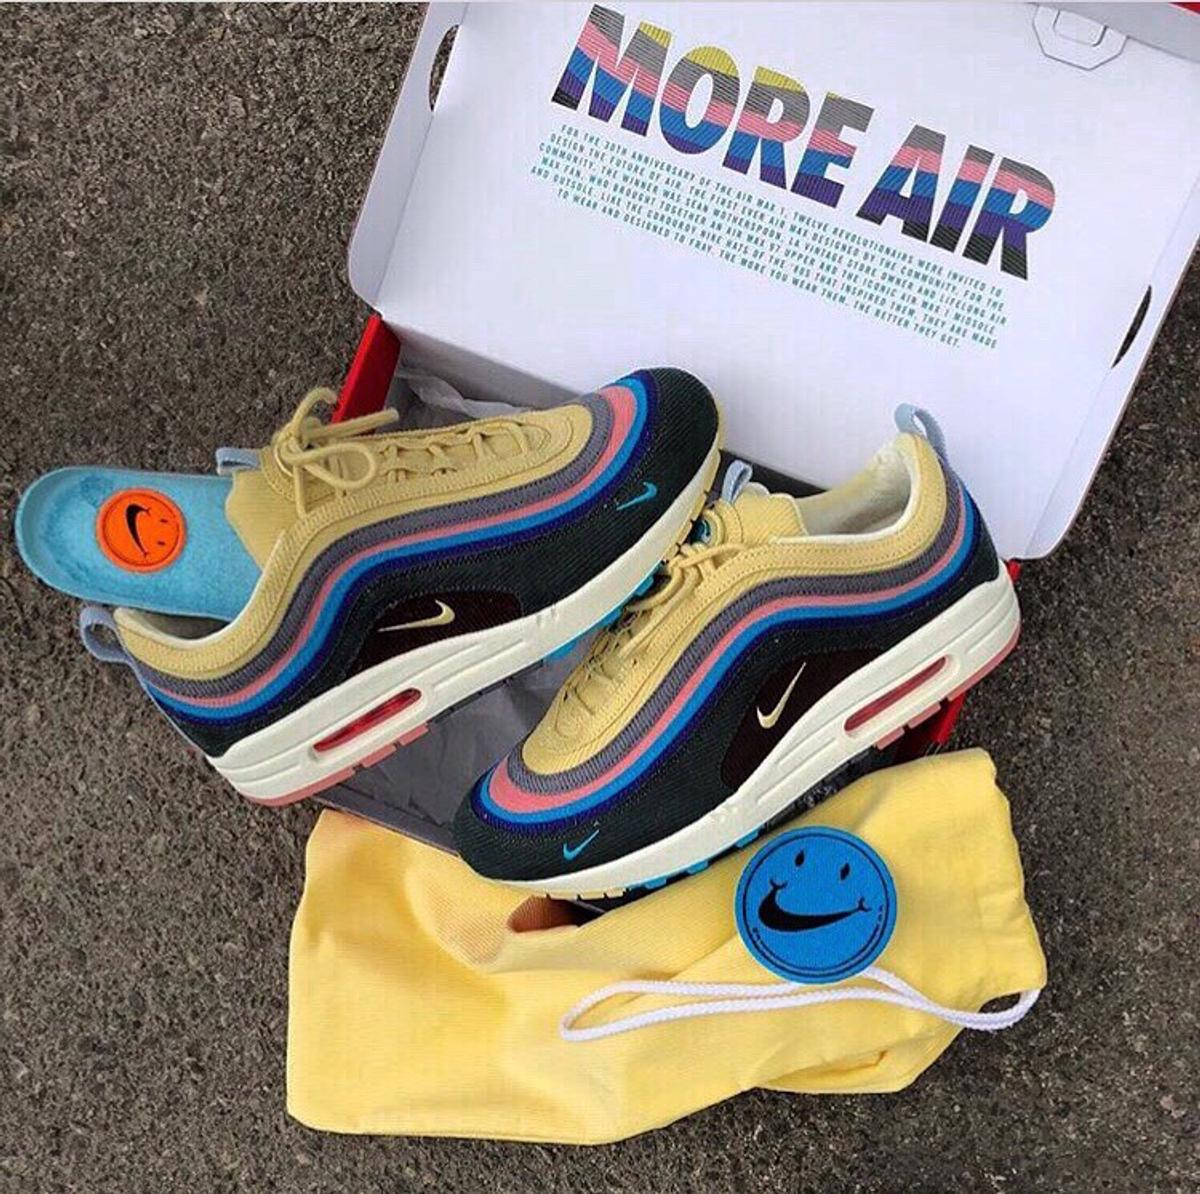 Authentic Deadstock Sean Wotherspoon AirMax97 in BA2 8SQ